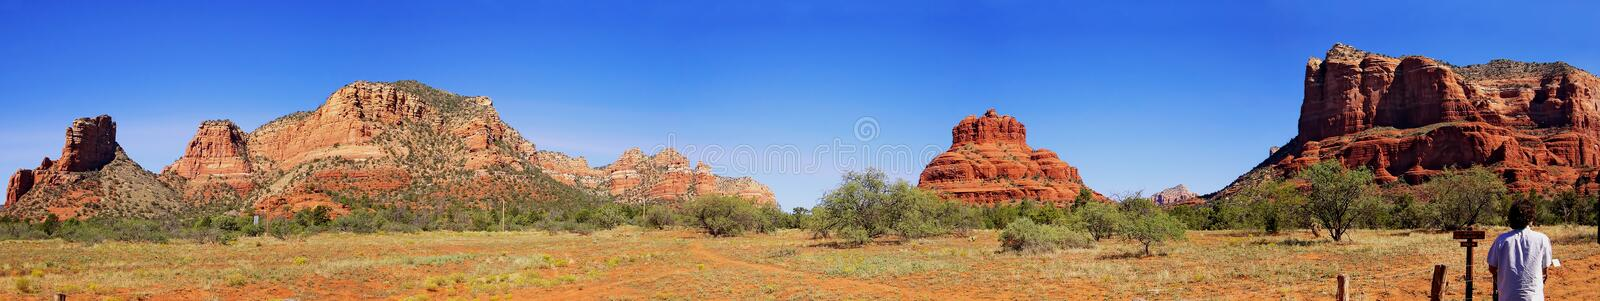 Landscape Panorama - Monument Valley stock photo